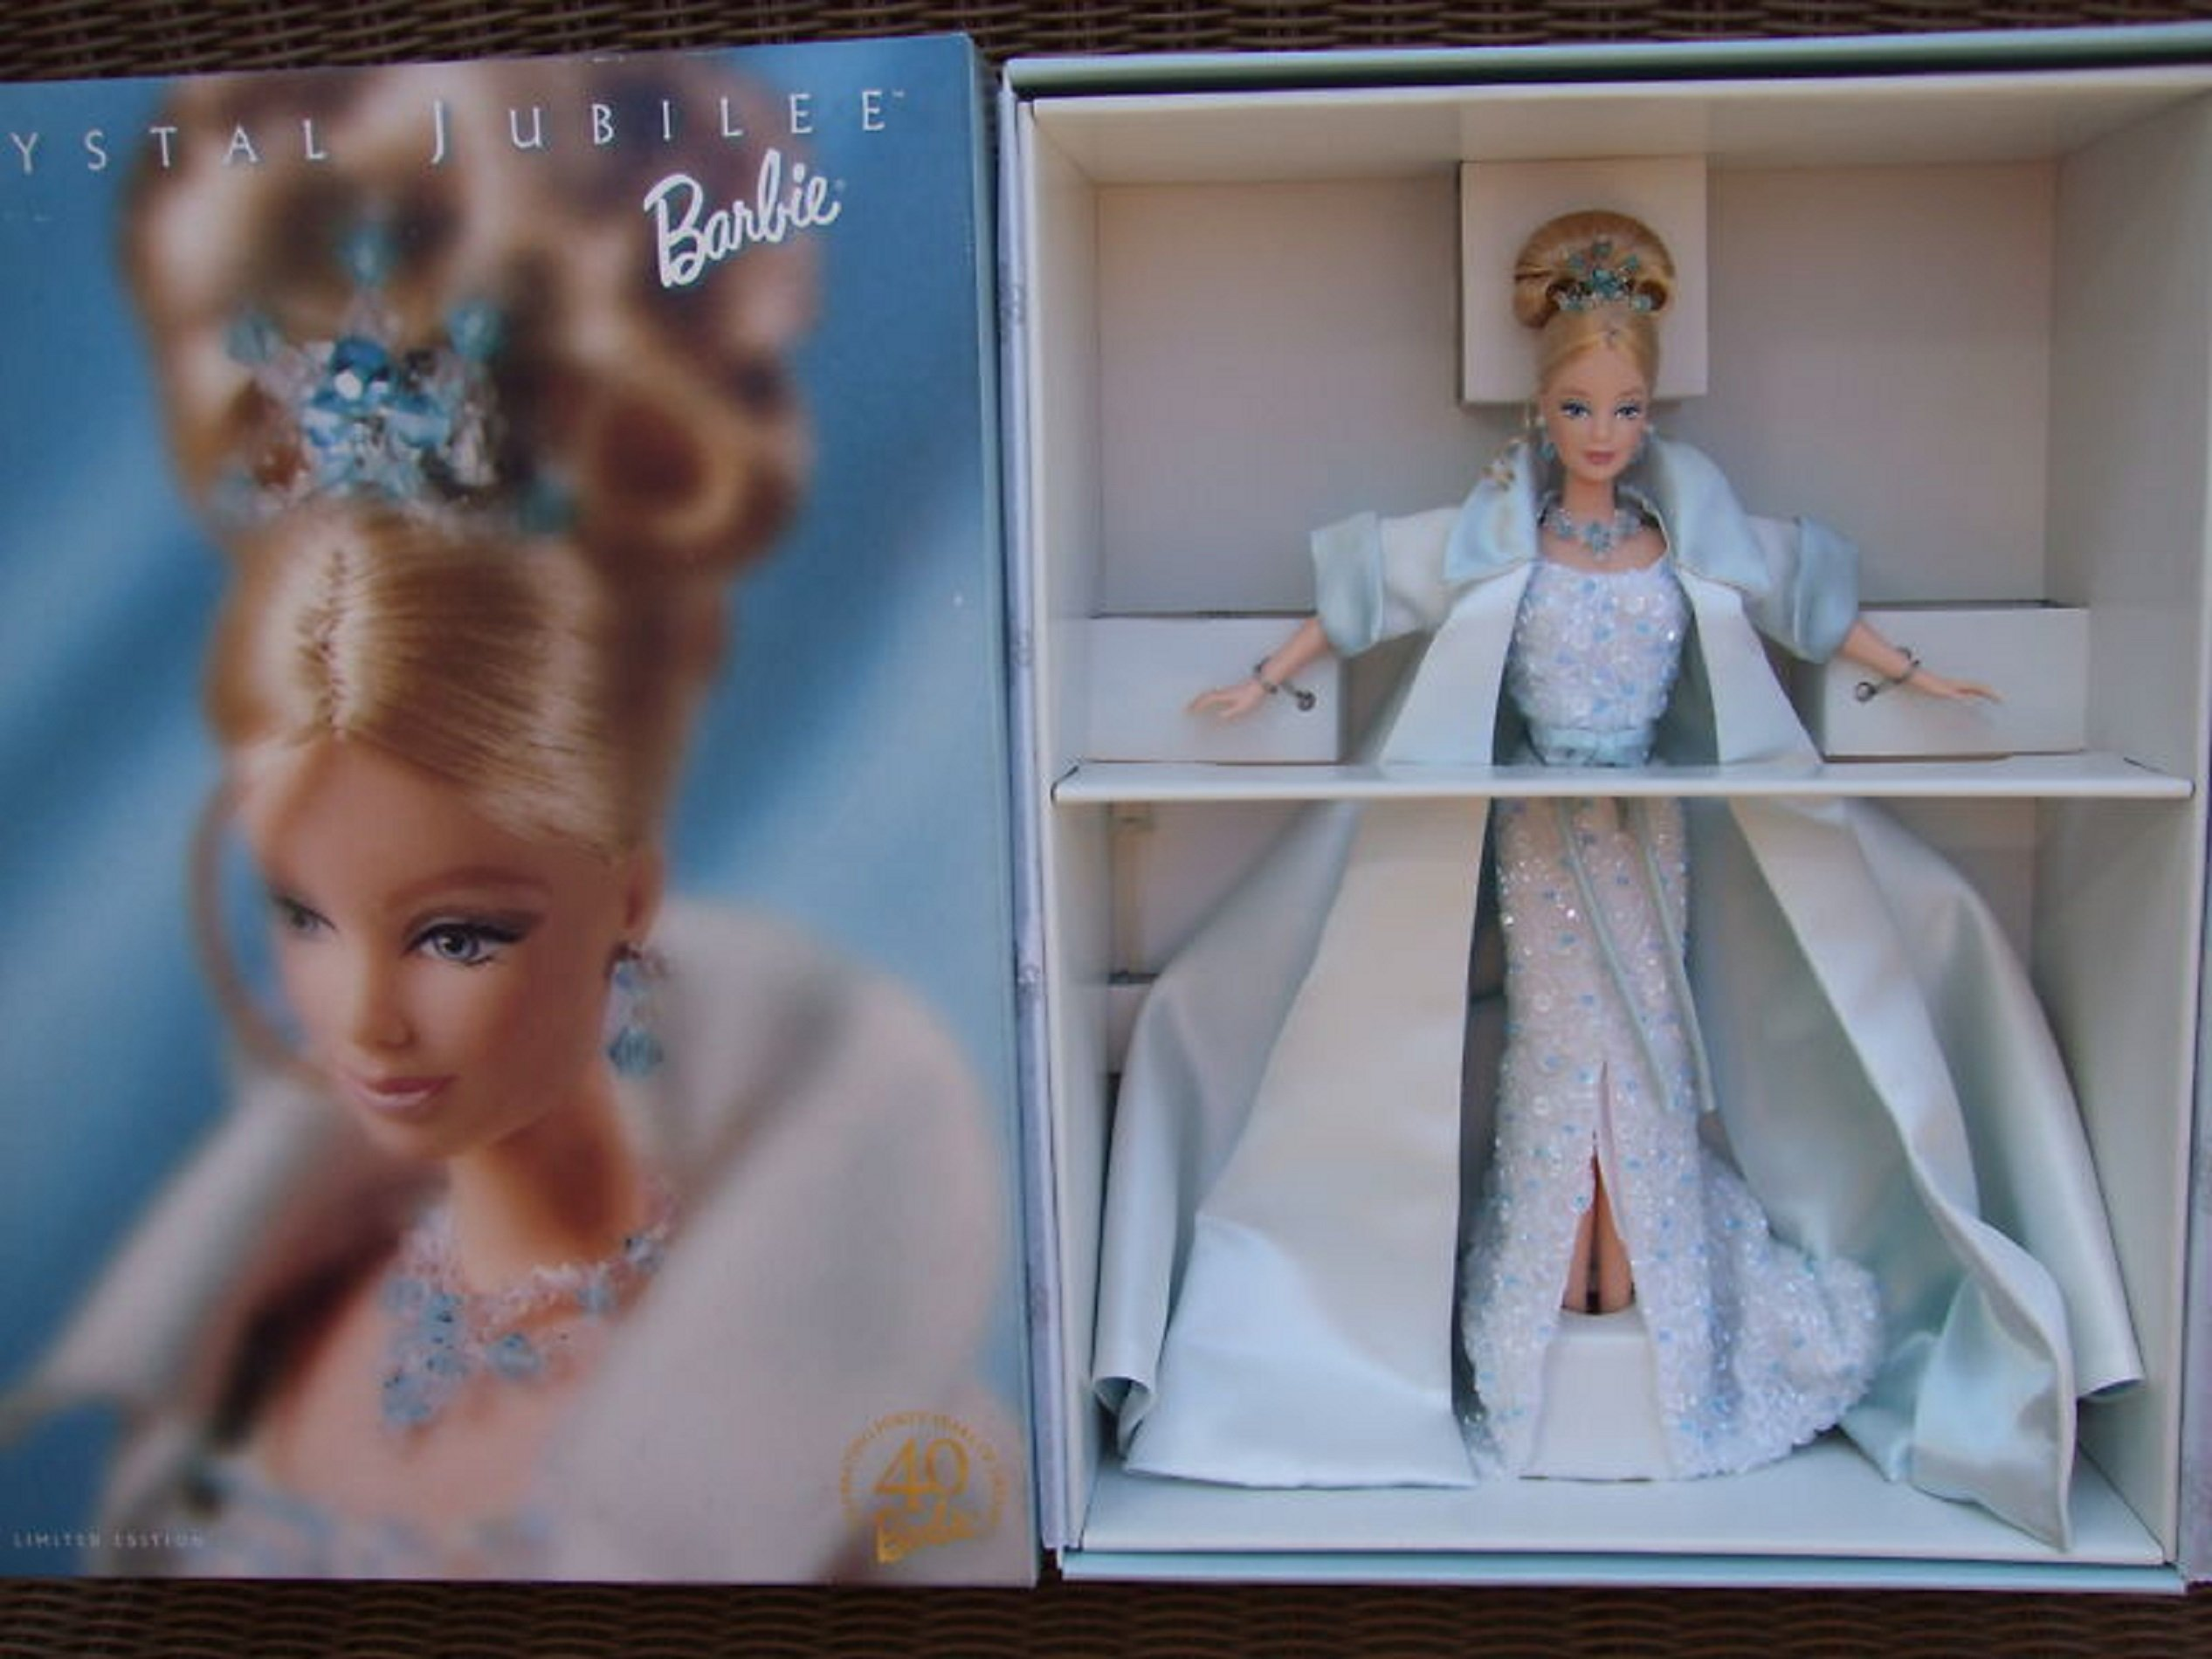 1999 Barbie Collectibles - Barbie 40th Anniversary - Crystal Jubilee Barbie